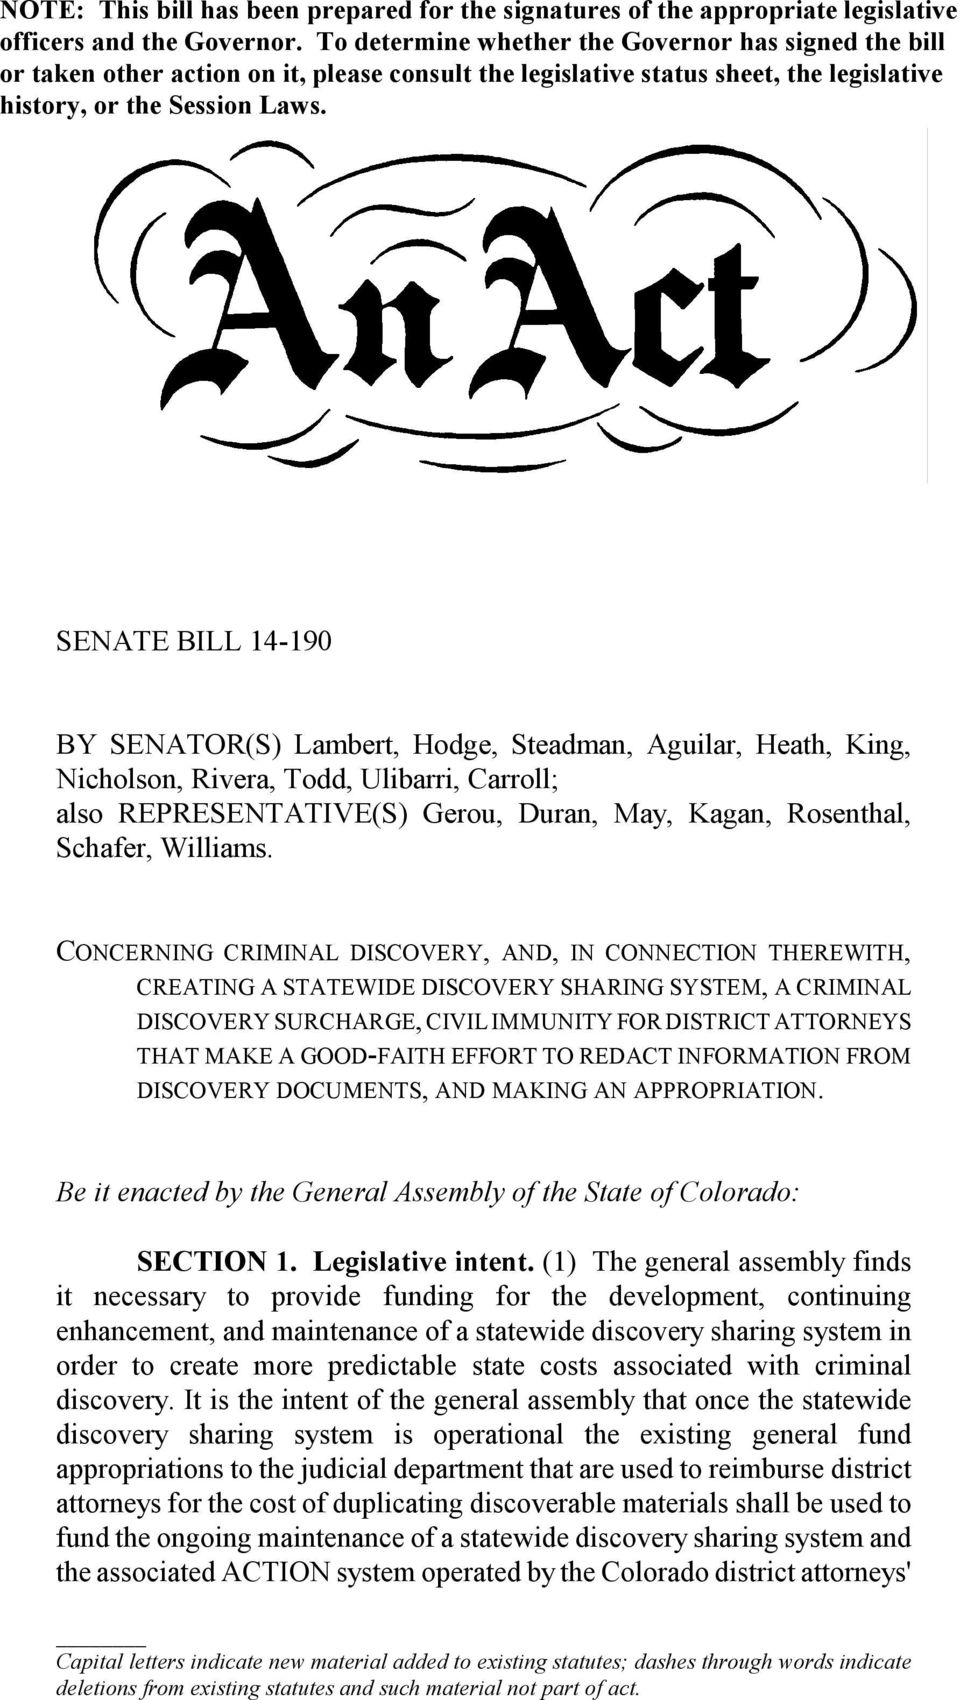 SENATE BILL 14-190 BY SENATOR(S) Lambert, Hodge, Steadman, Aguilar, Heath, King, Nicholson, Rivera, Todd, Ulibarri, Carroll; also REPRESENTATIVE(S) Gerou, Duran, May, Kagan, Rosenthal, Schafer,